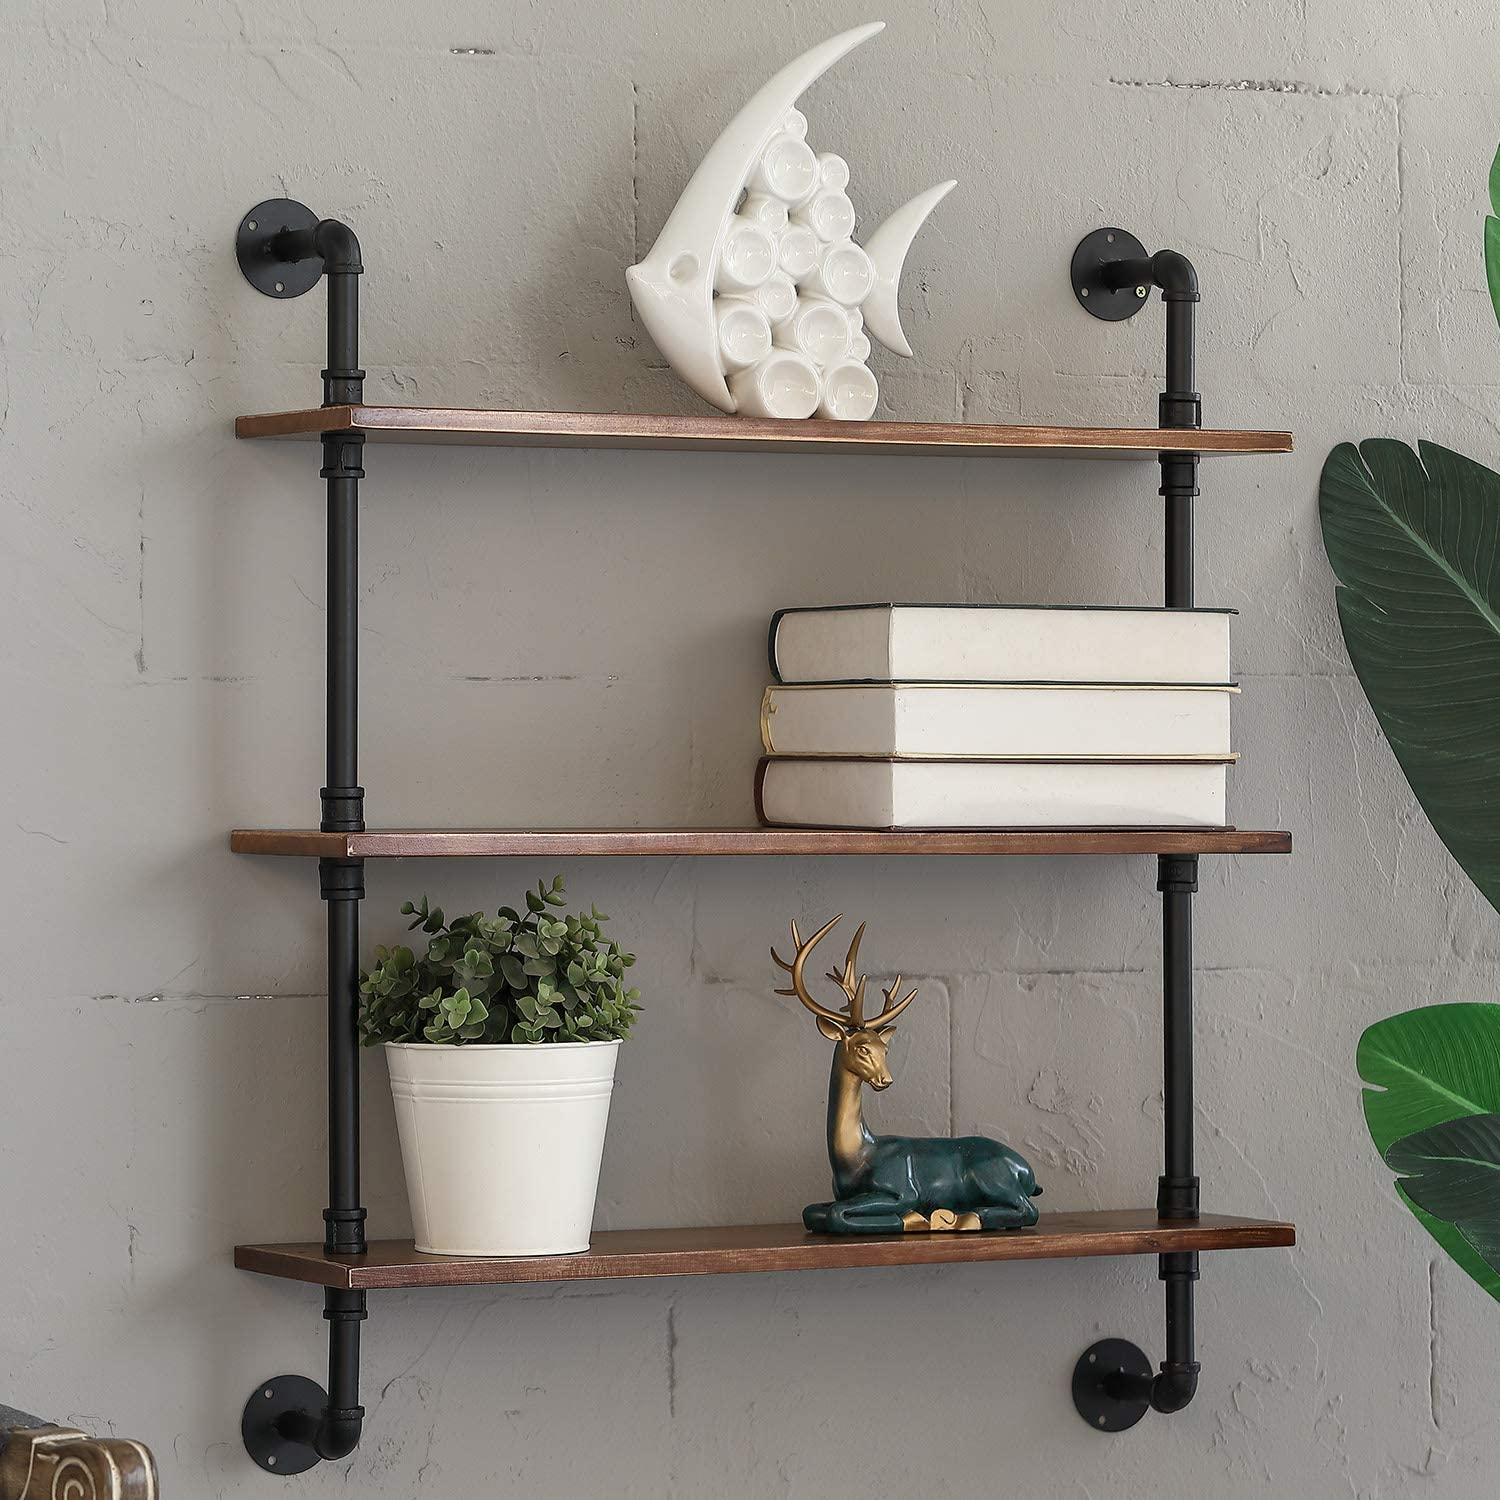 MOCOME Industrial Pipe Shelf with Light Solid Pine Wood, Rustic Wall Mount Floating Shelves for Bathroom, 3 Tier DIY Metal Bracket Wall Shelving Bookshelf(Both Sides Brown)